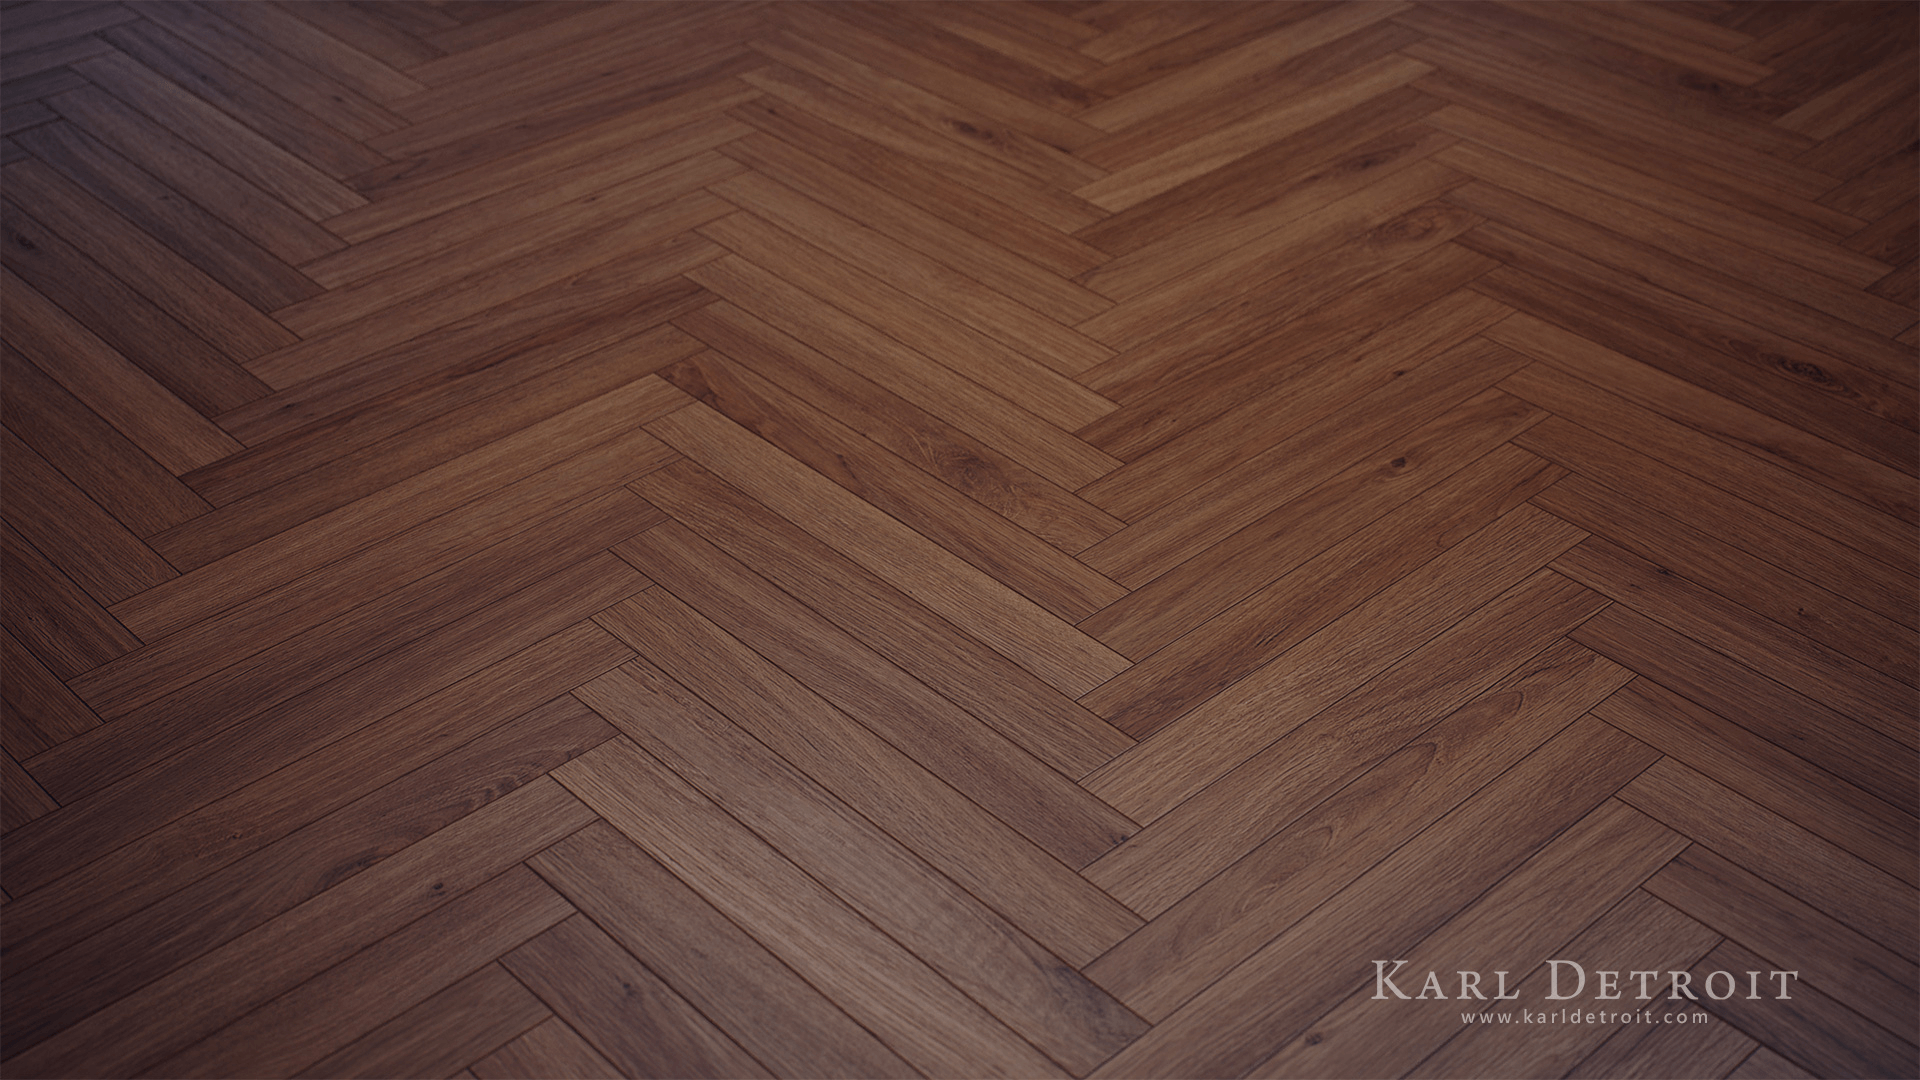 4k materials wood flooring by karl detroit in